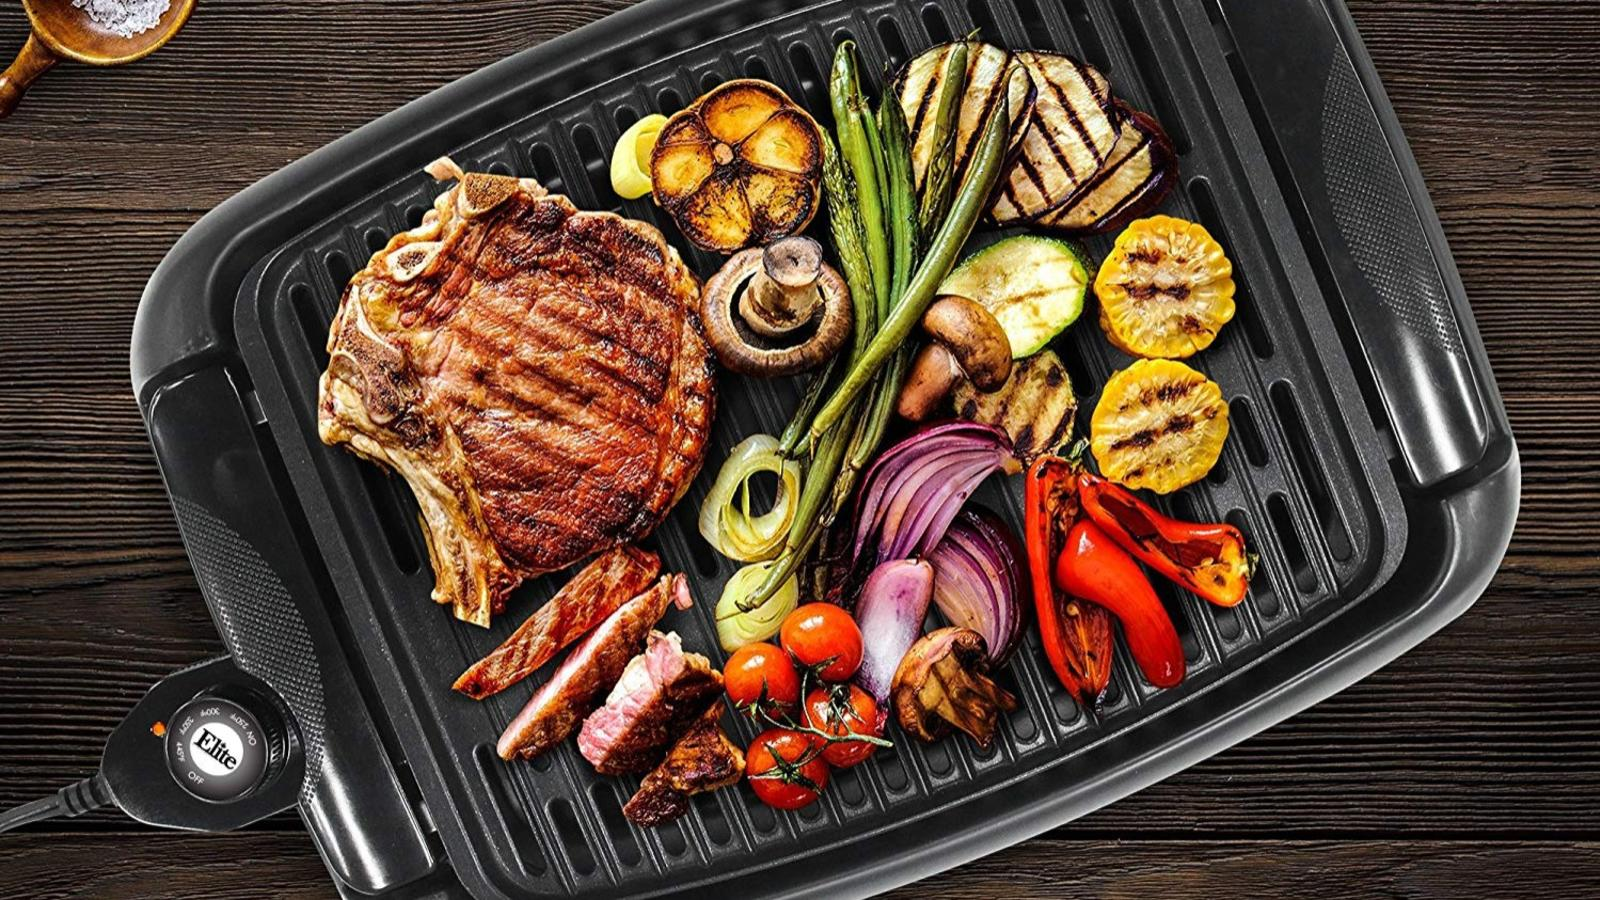 Top down Maxt-Matic indoor grill